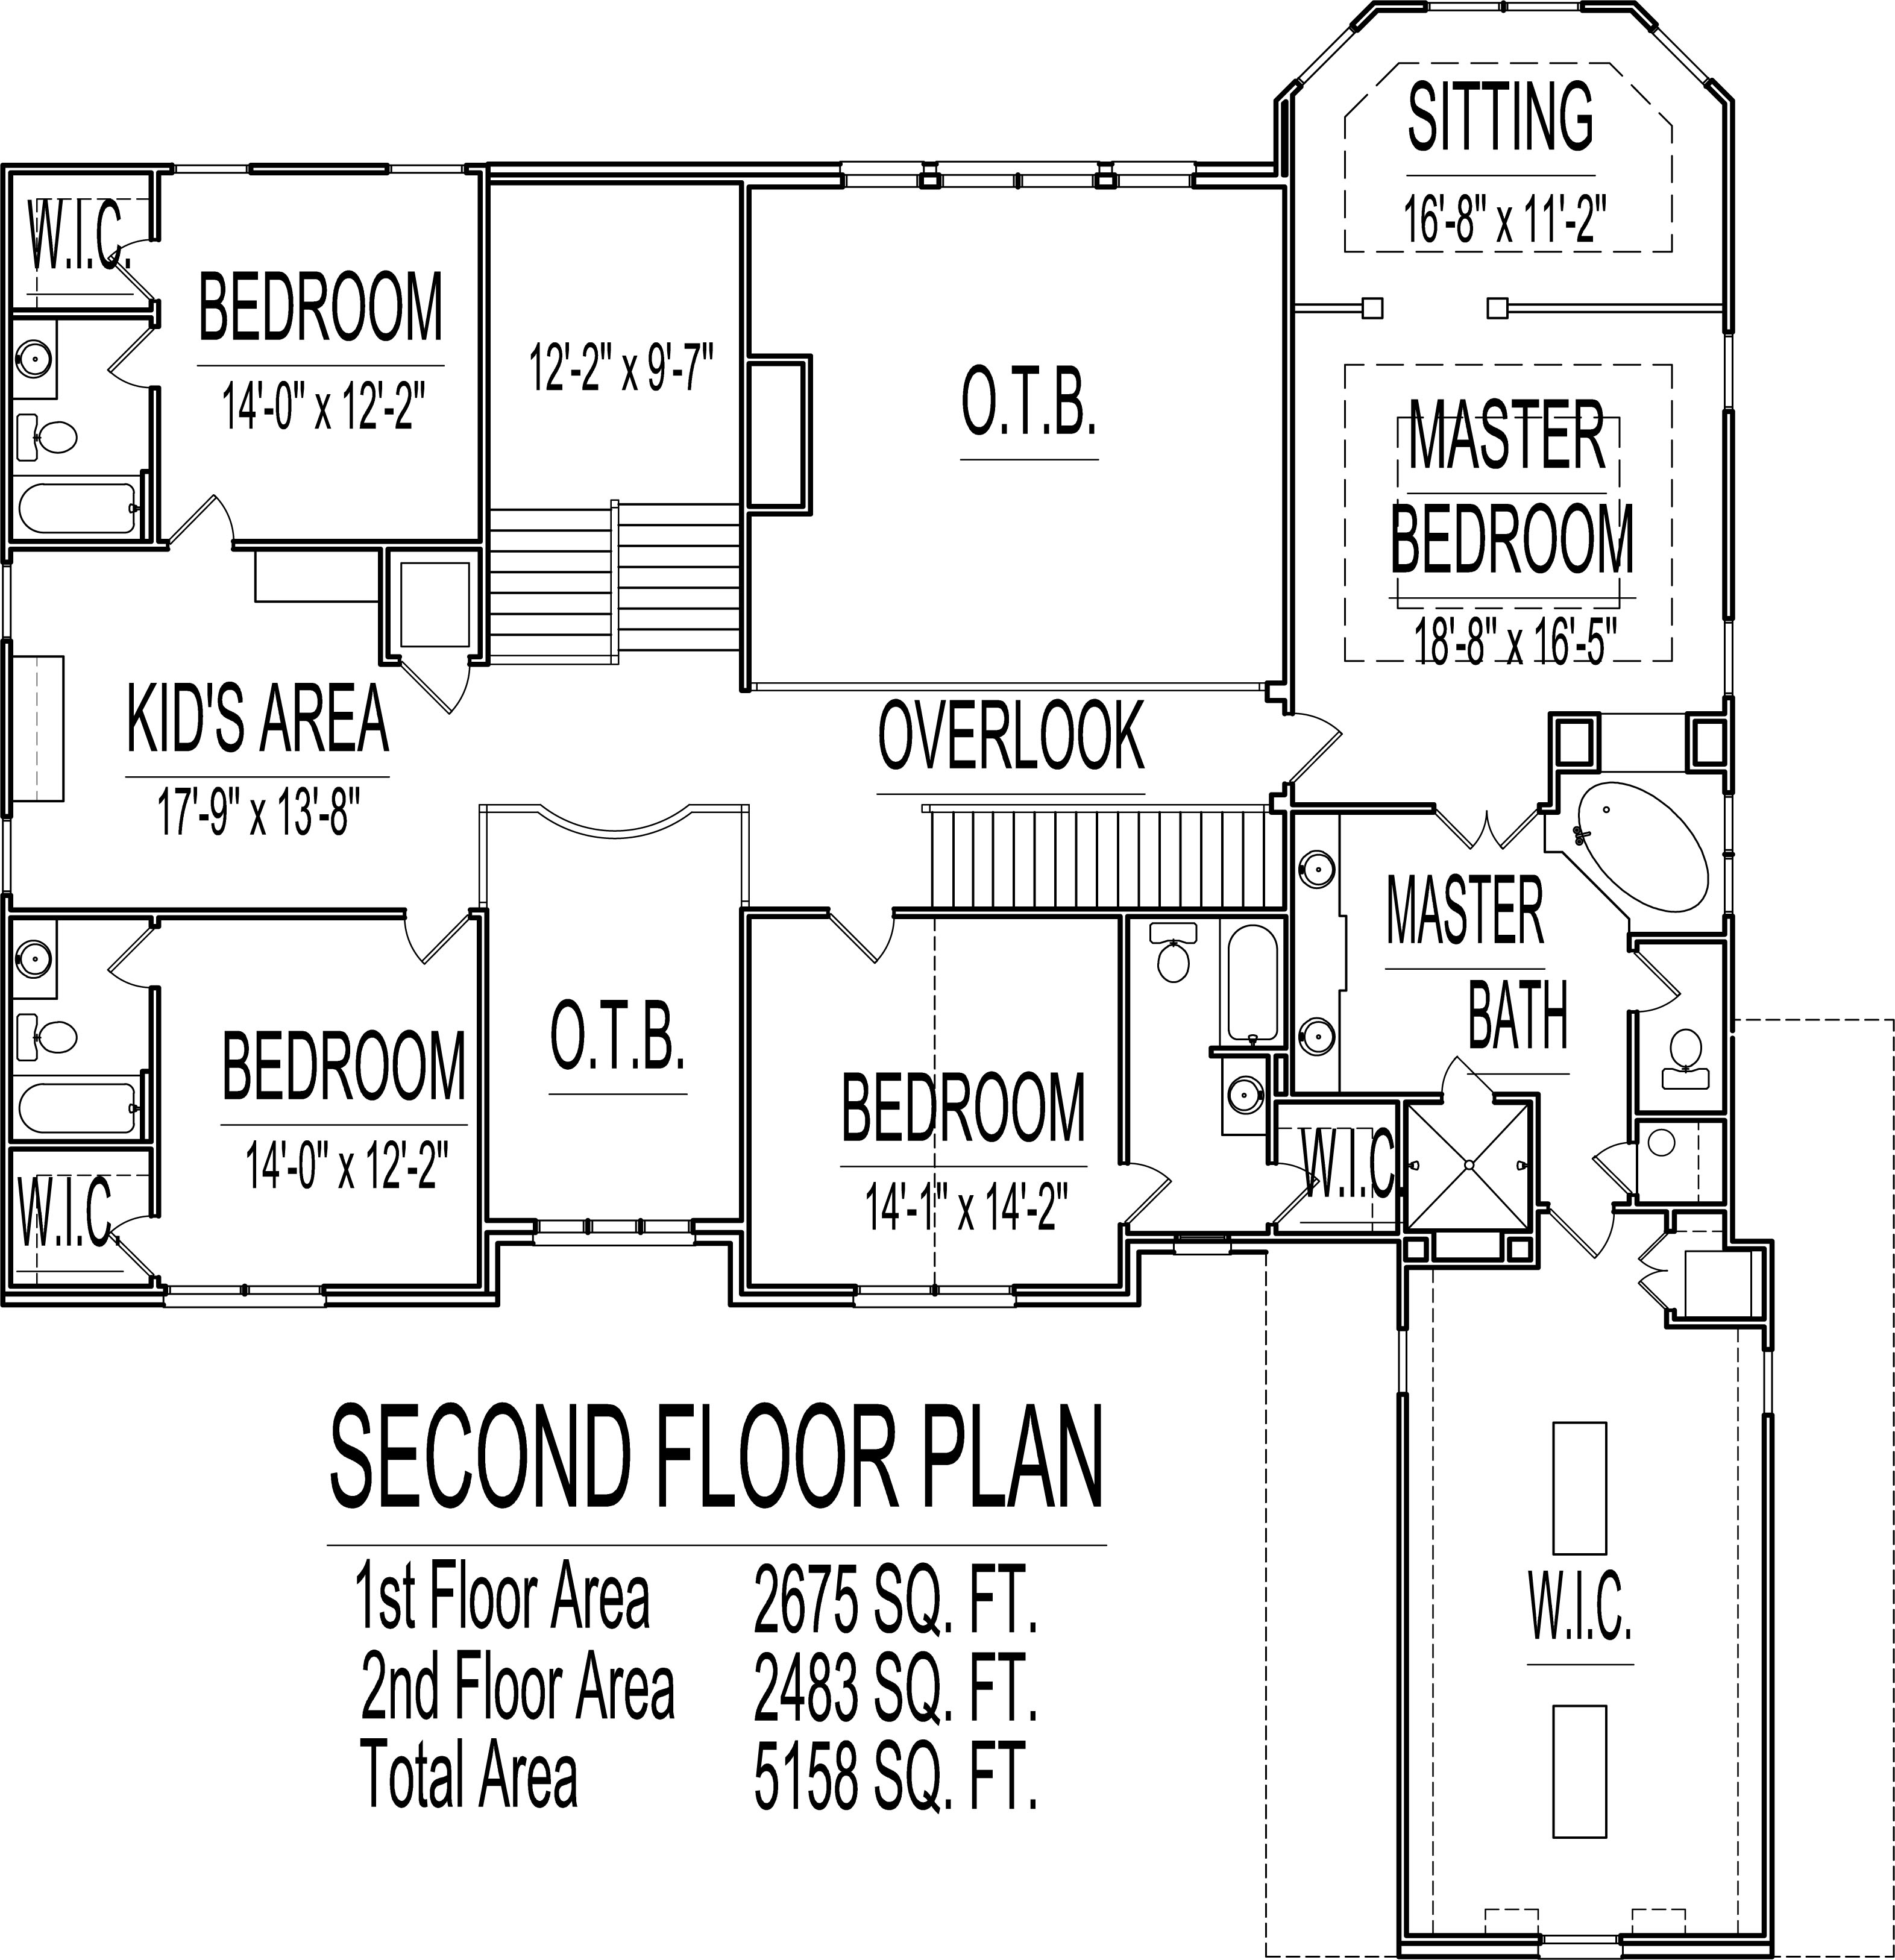 20 Bedroom House 5 Bedroom House Floor Plans Two Bedroom